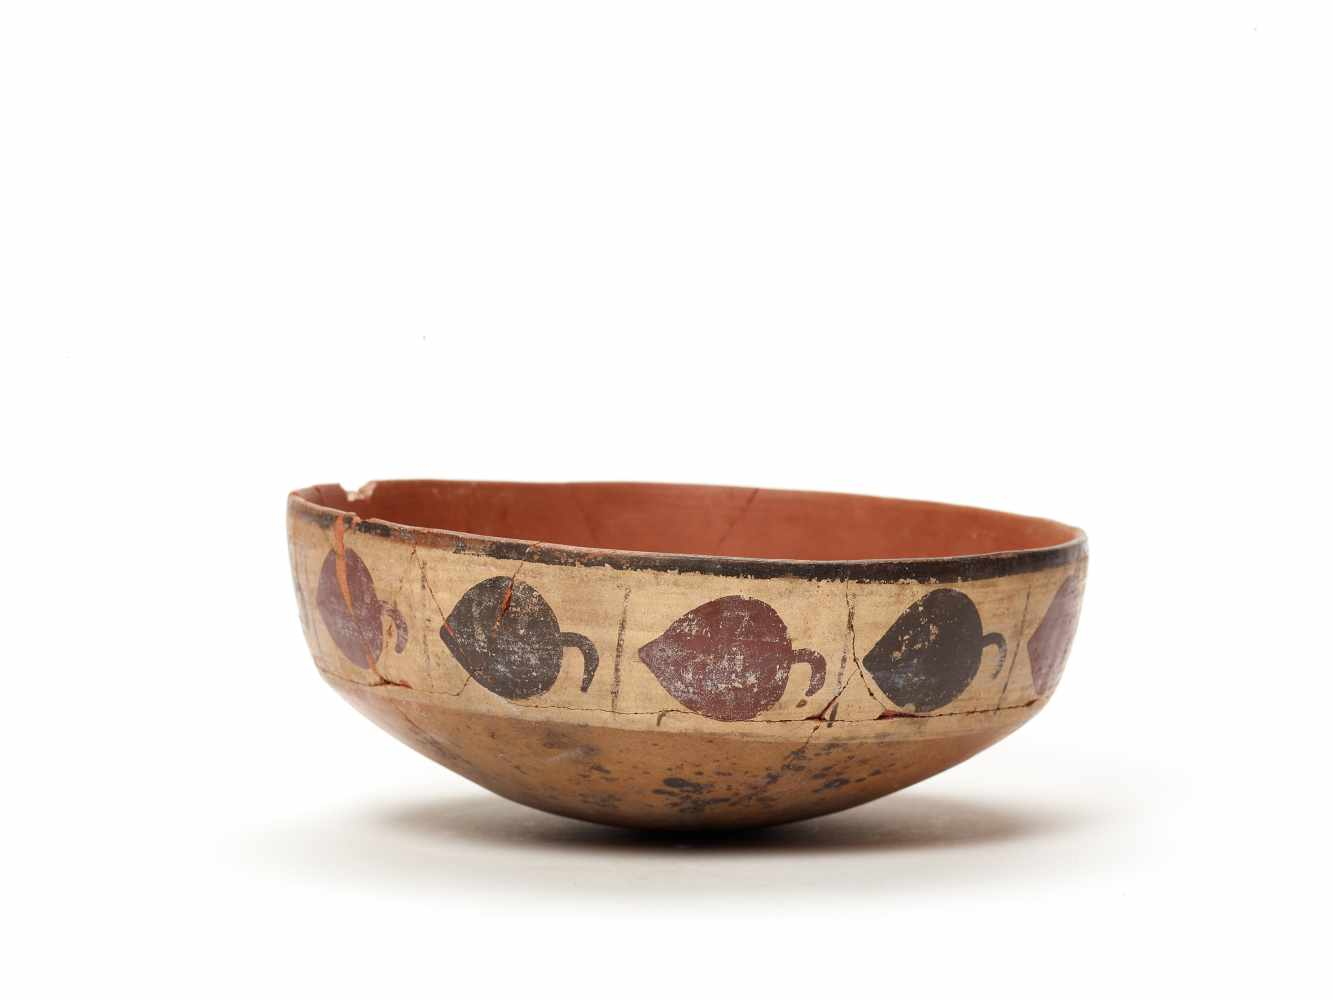 BOWL WITH BAND DECORATION - NAZCA, PERU, C. 300-600 ADPainted clayNazca, Peru, c. 300-600 ADArched - Image 3 of 5